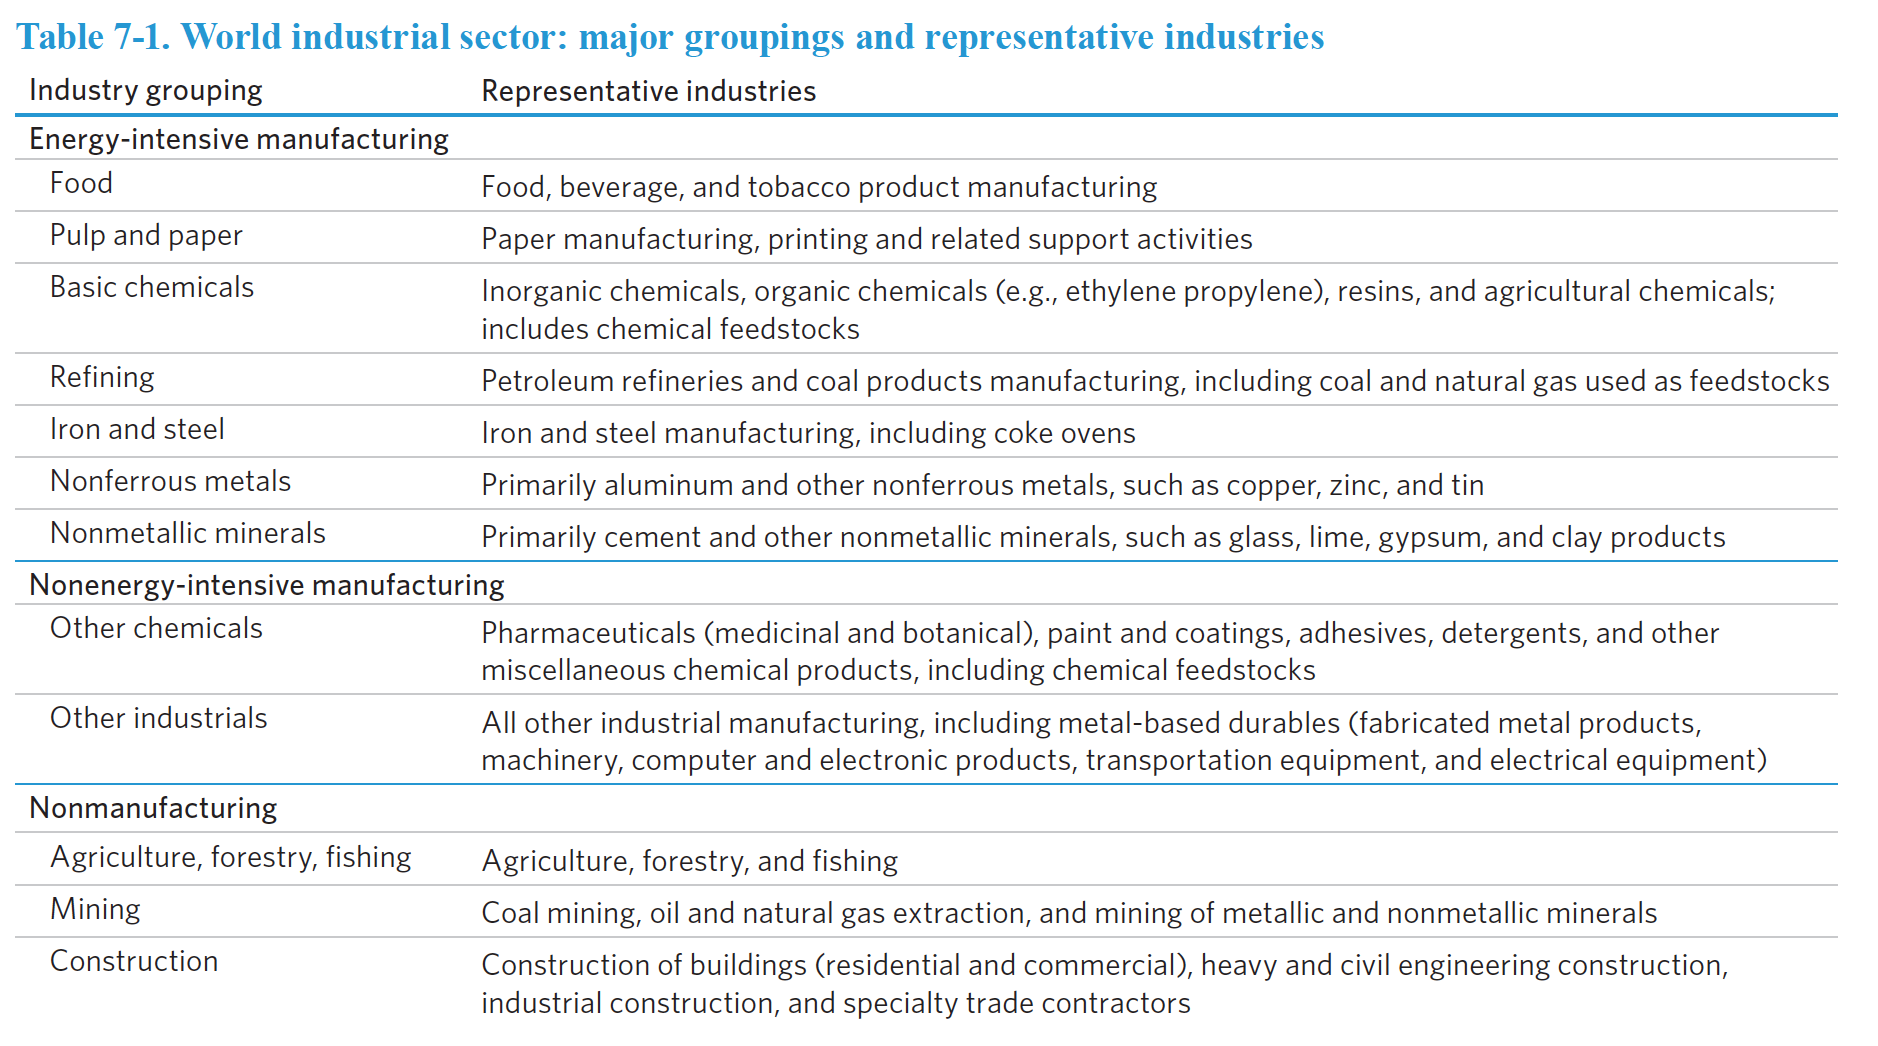 industrial, energy, manufacturing, mining, refining